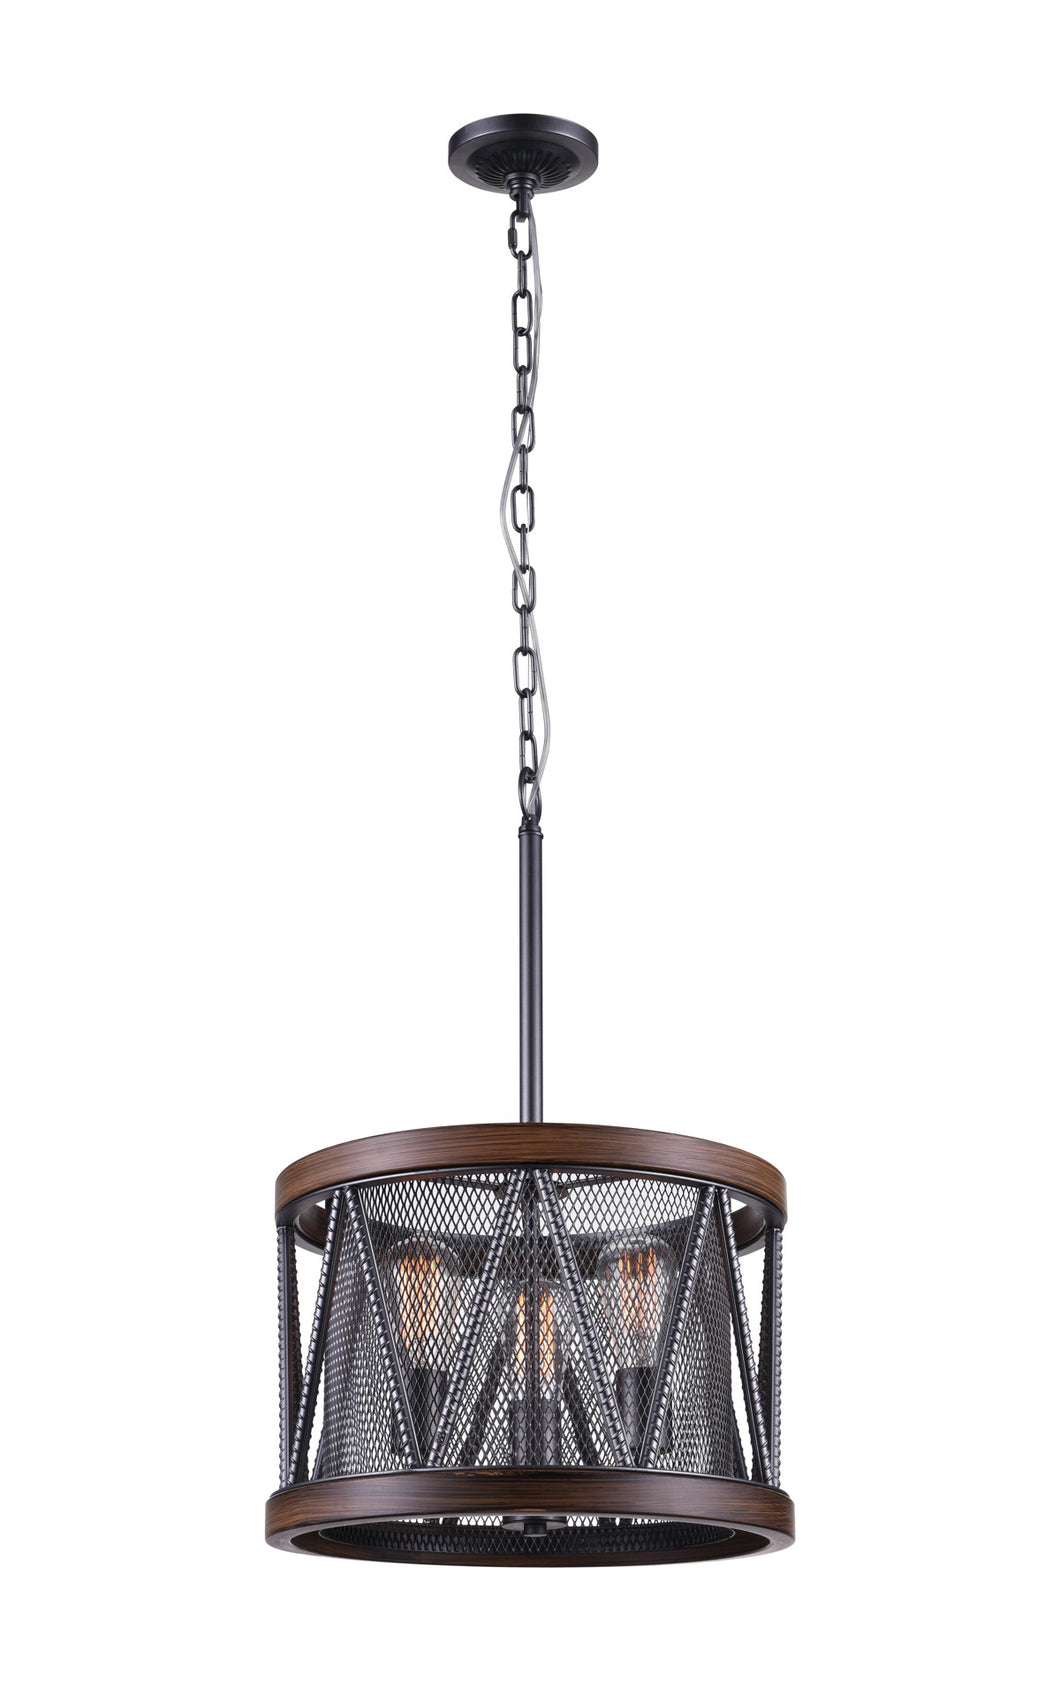 3 Light Drum Shade Chandelier with Pewter finish